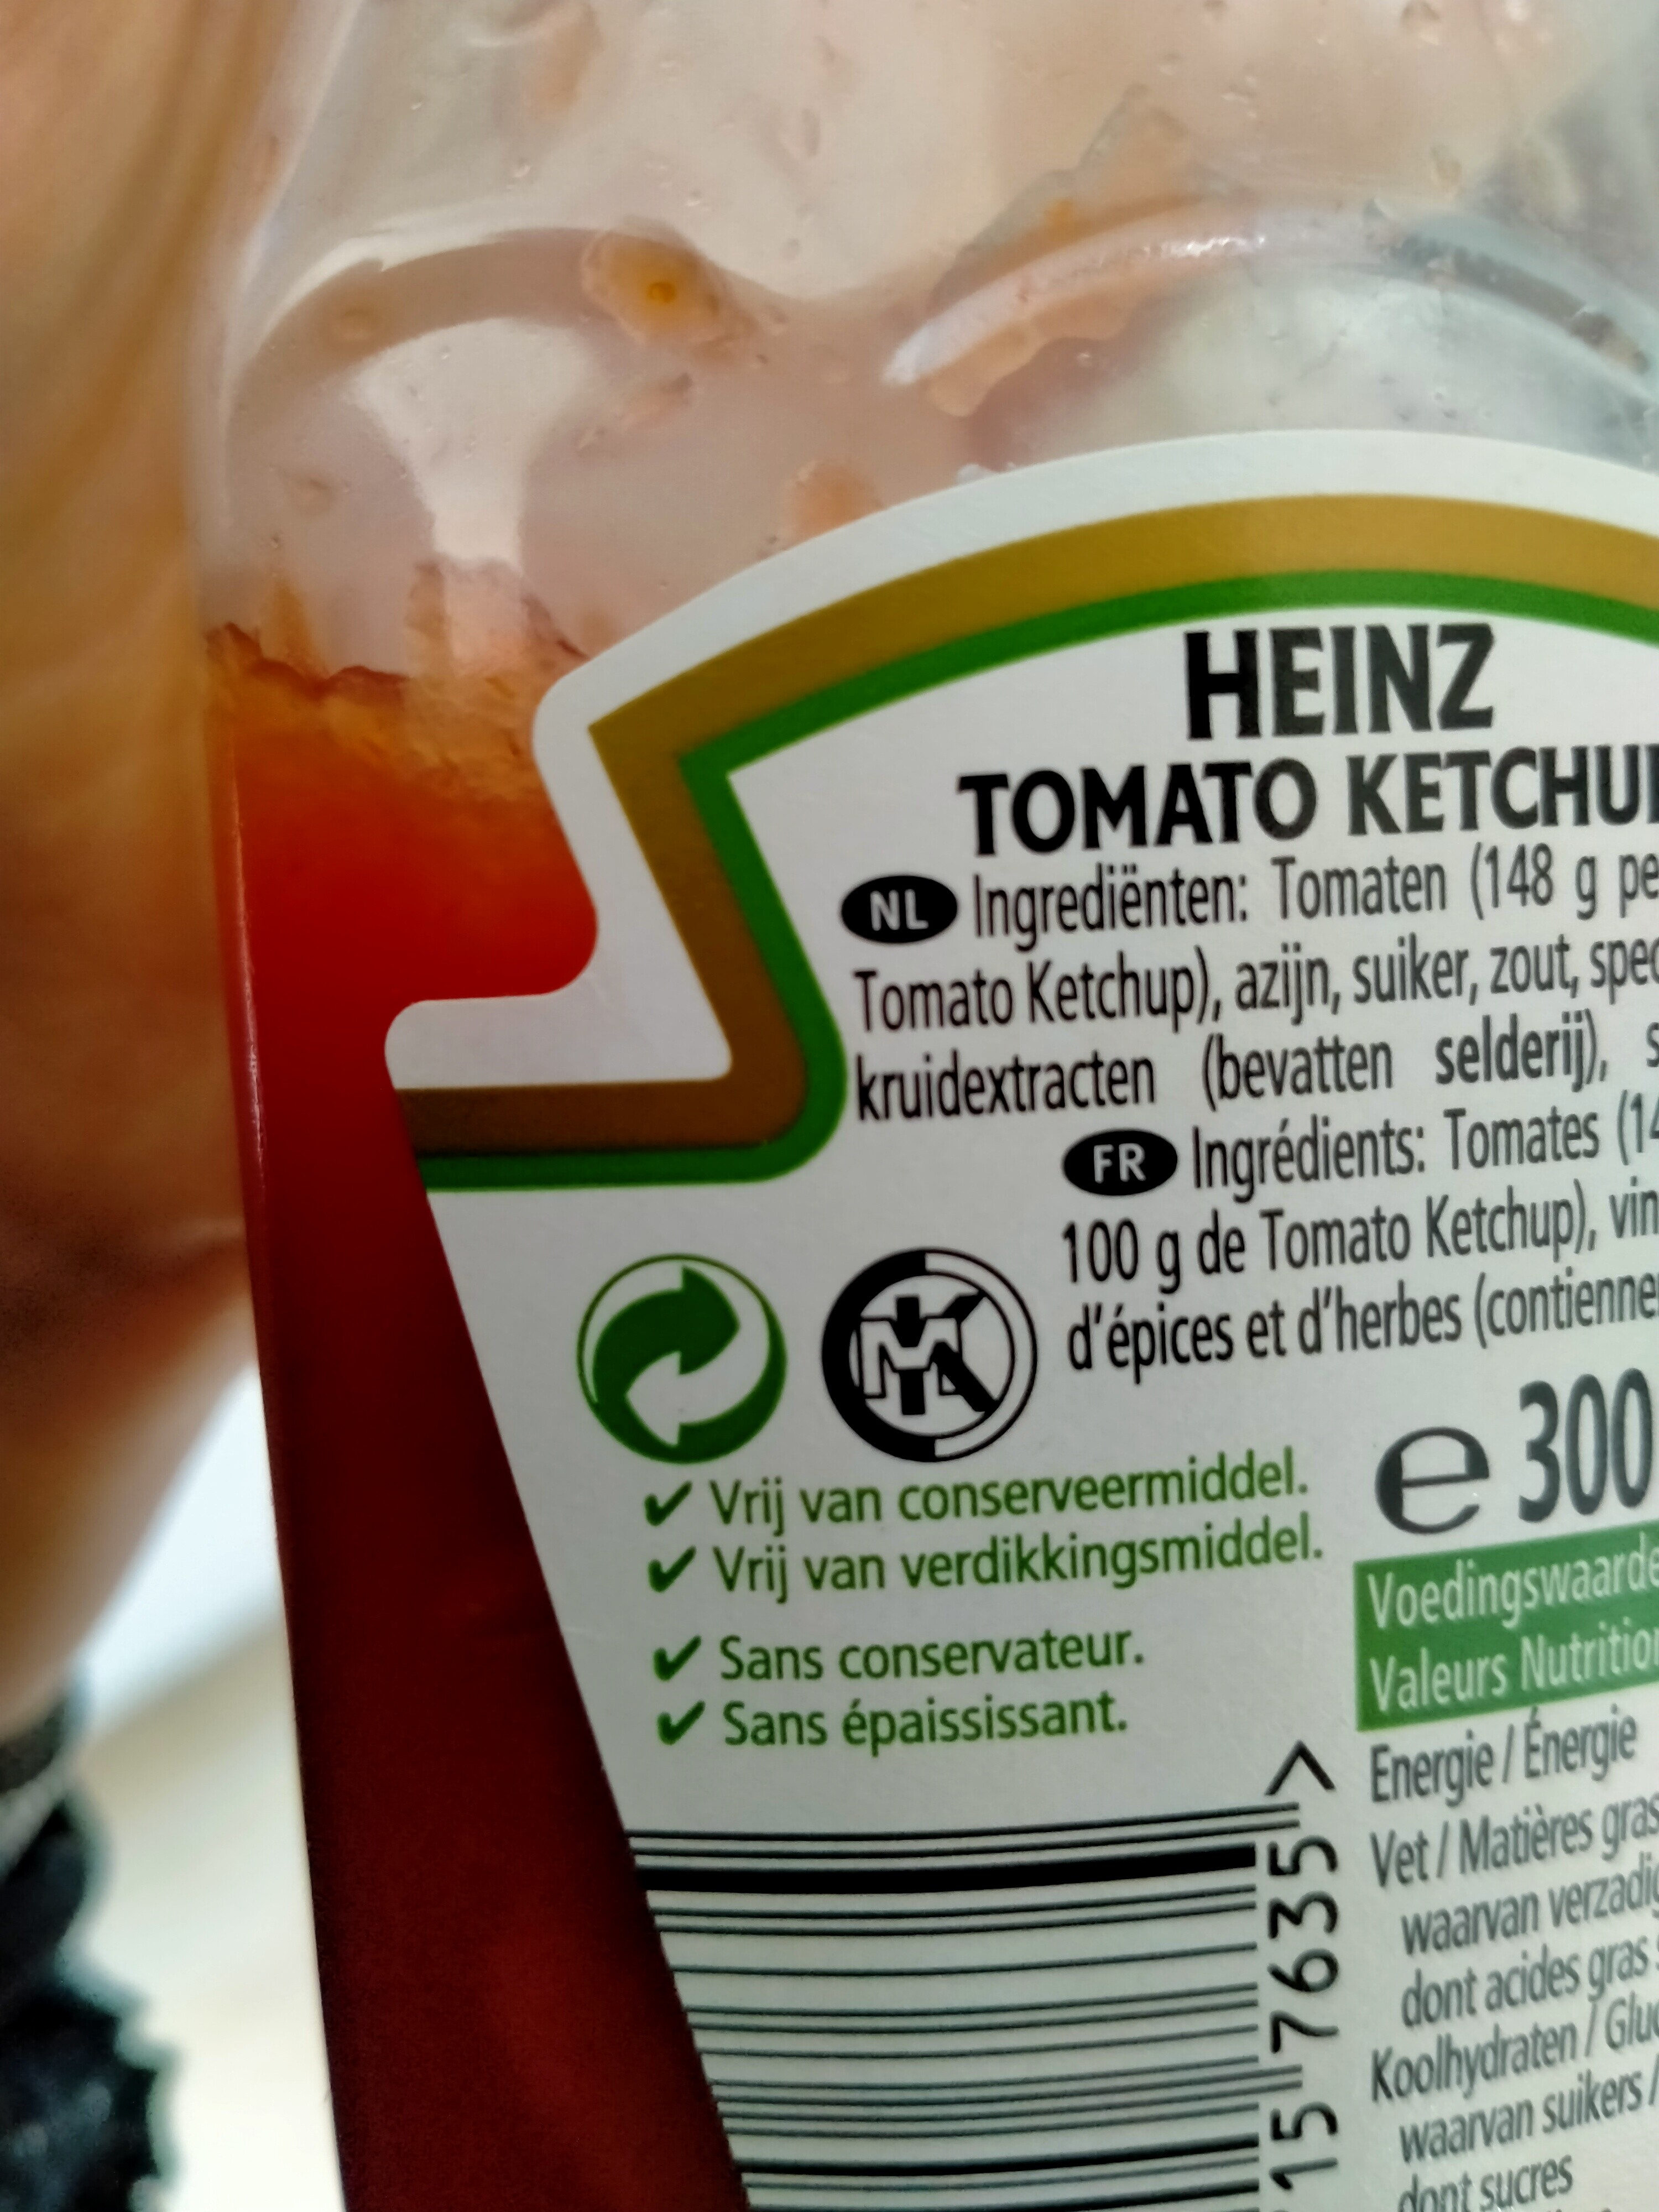 Tomato Ketchup 342 g flacon top up - Instruction de recyclage et/ou informations d'emballage - fr